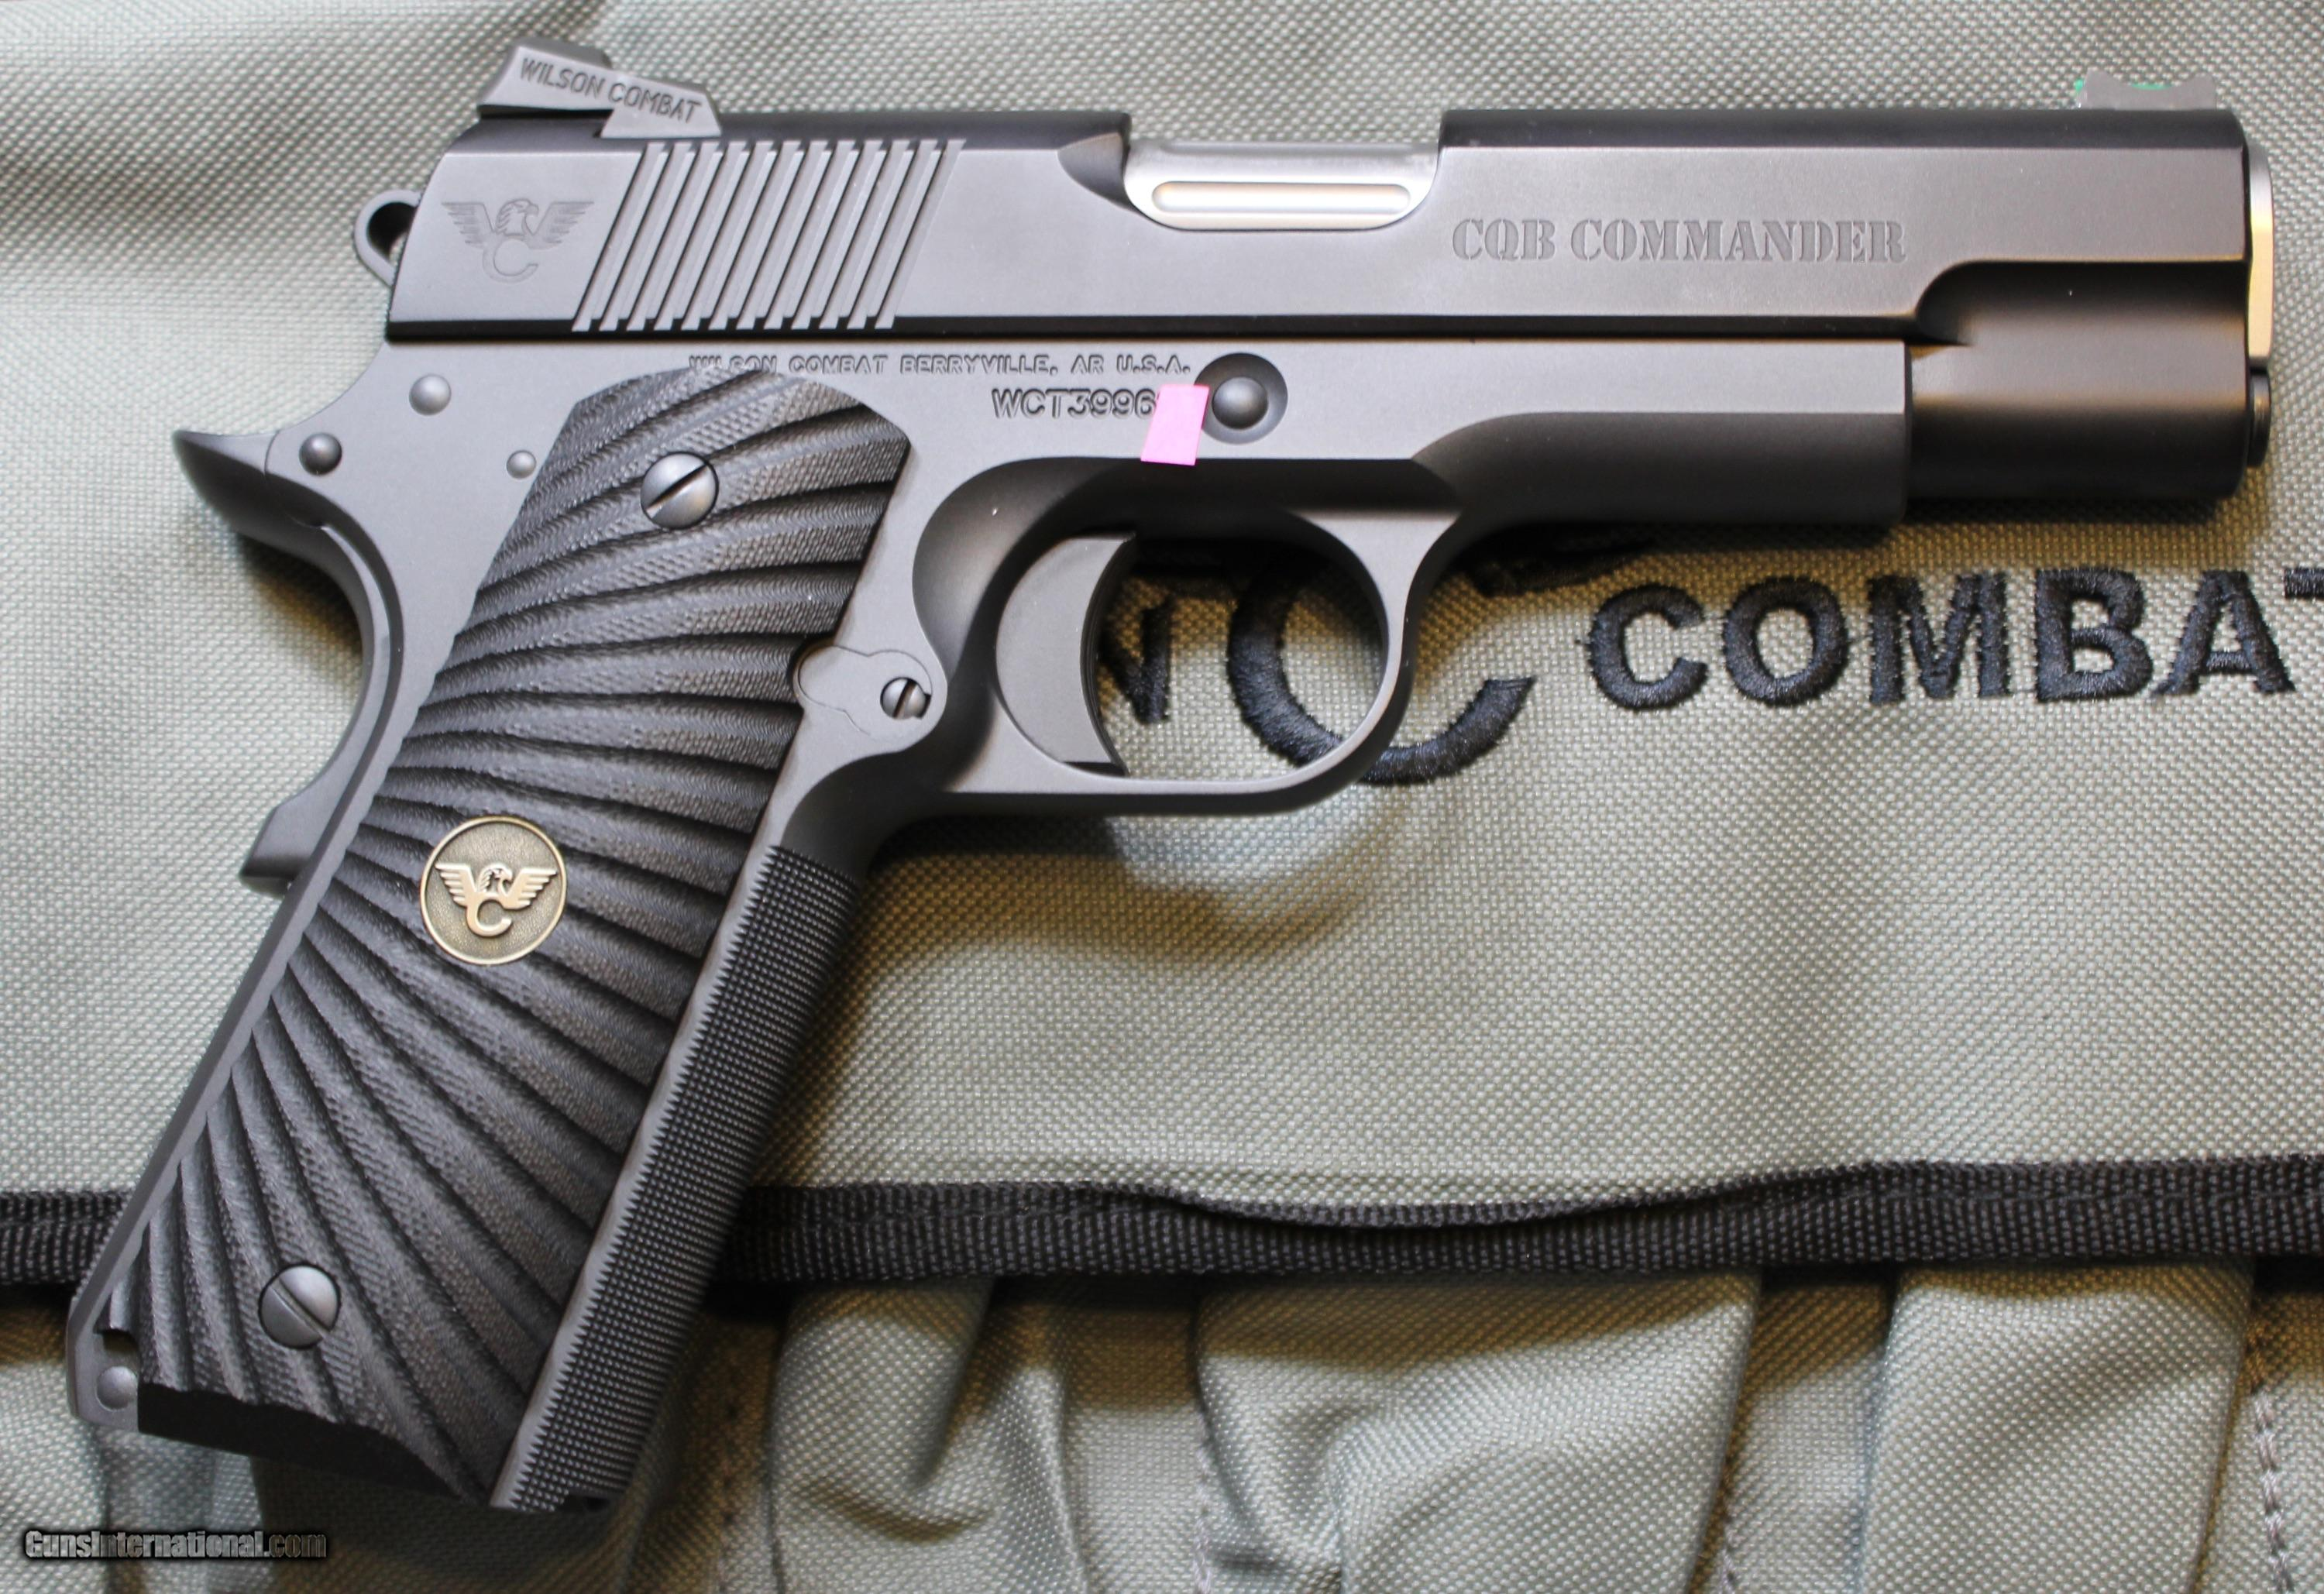 Wilson Combat CQB Commander 1911 45ACP with all